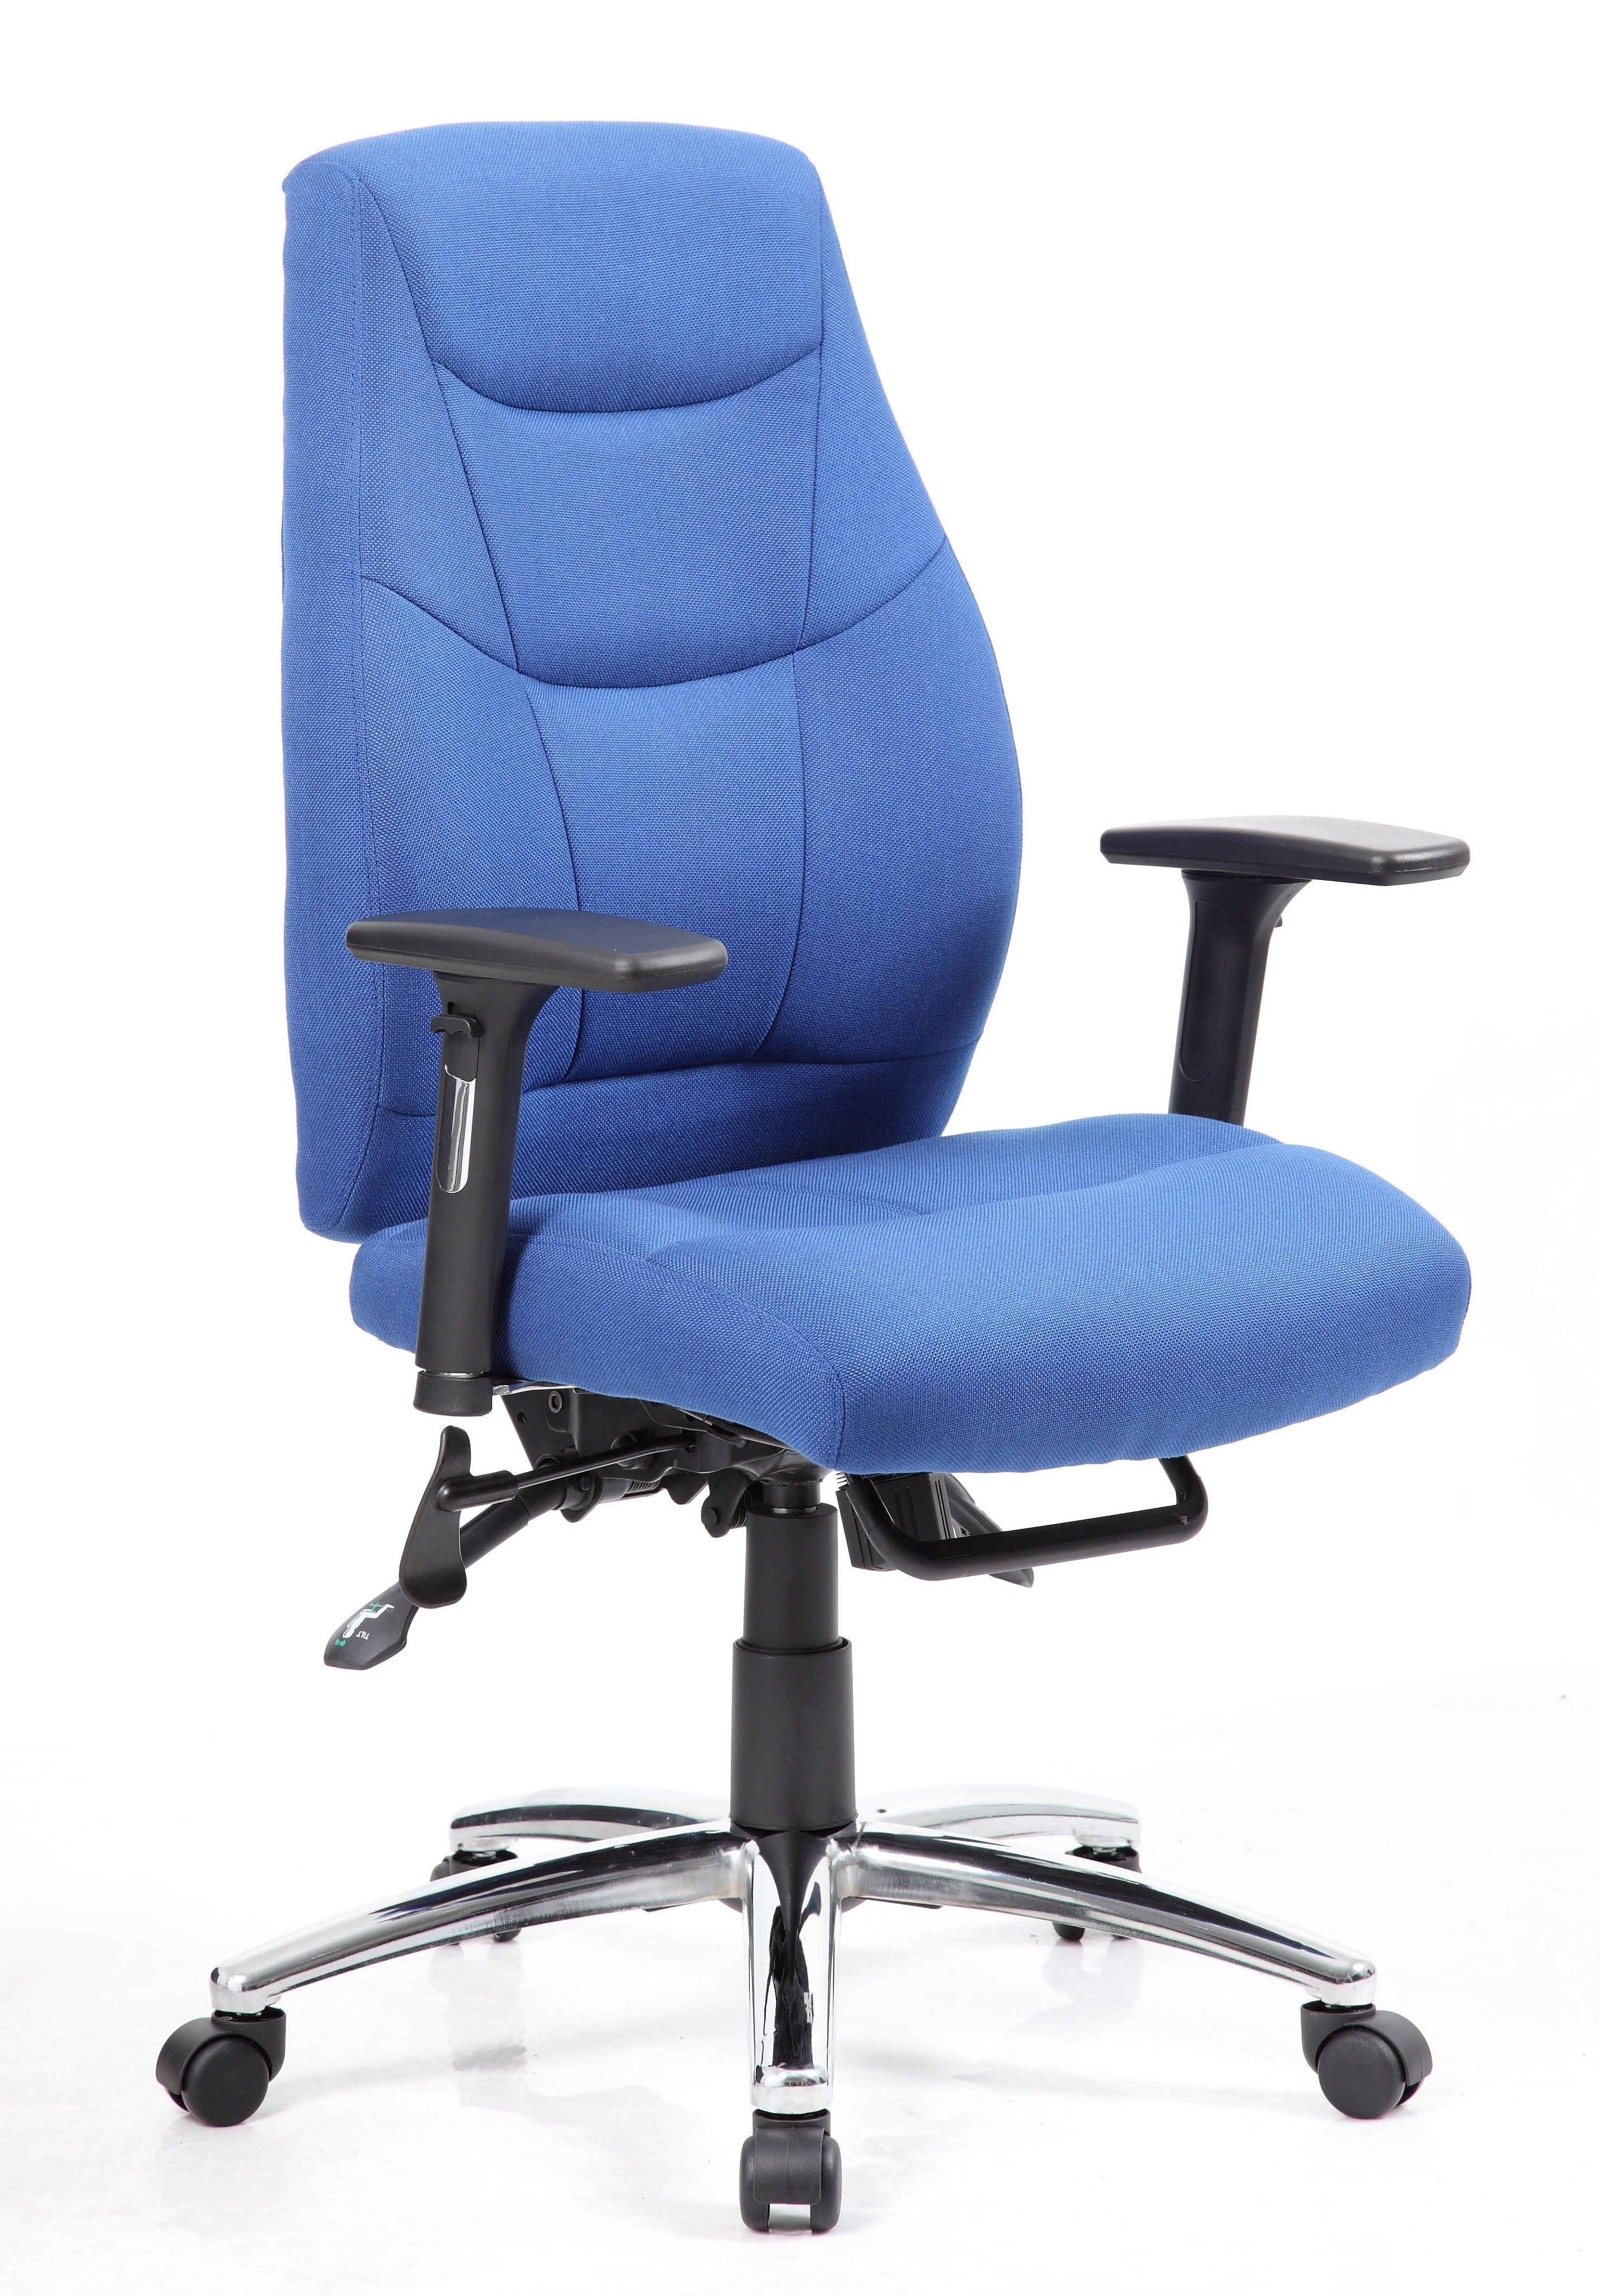 Fabric Office Chairs Fabric Desk Chairs Fabrics